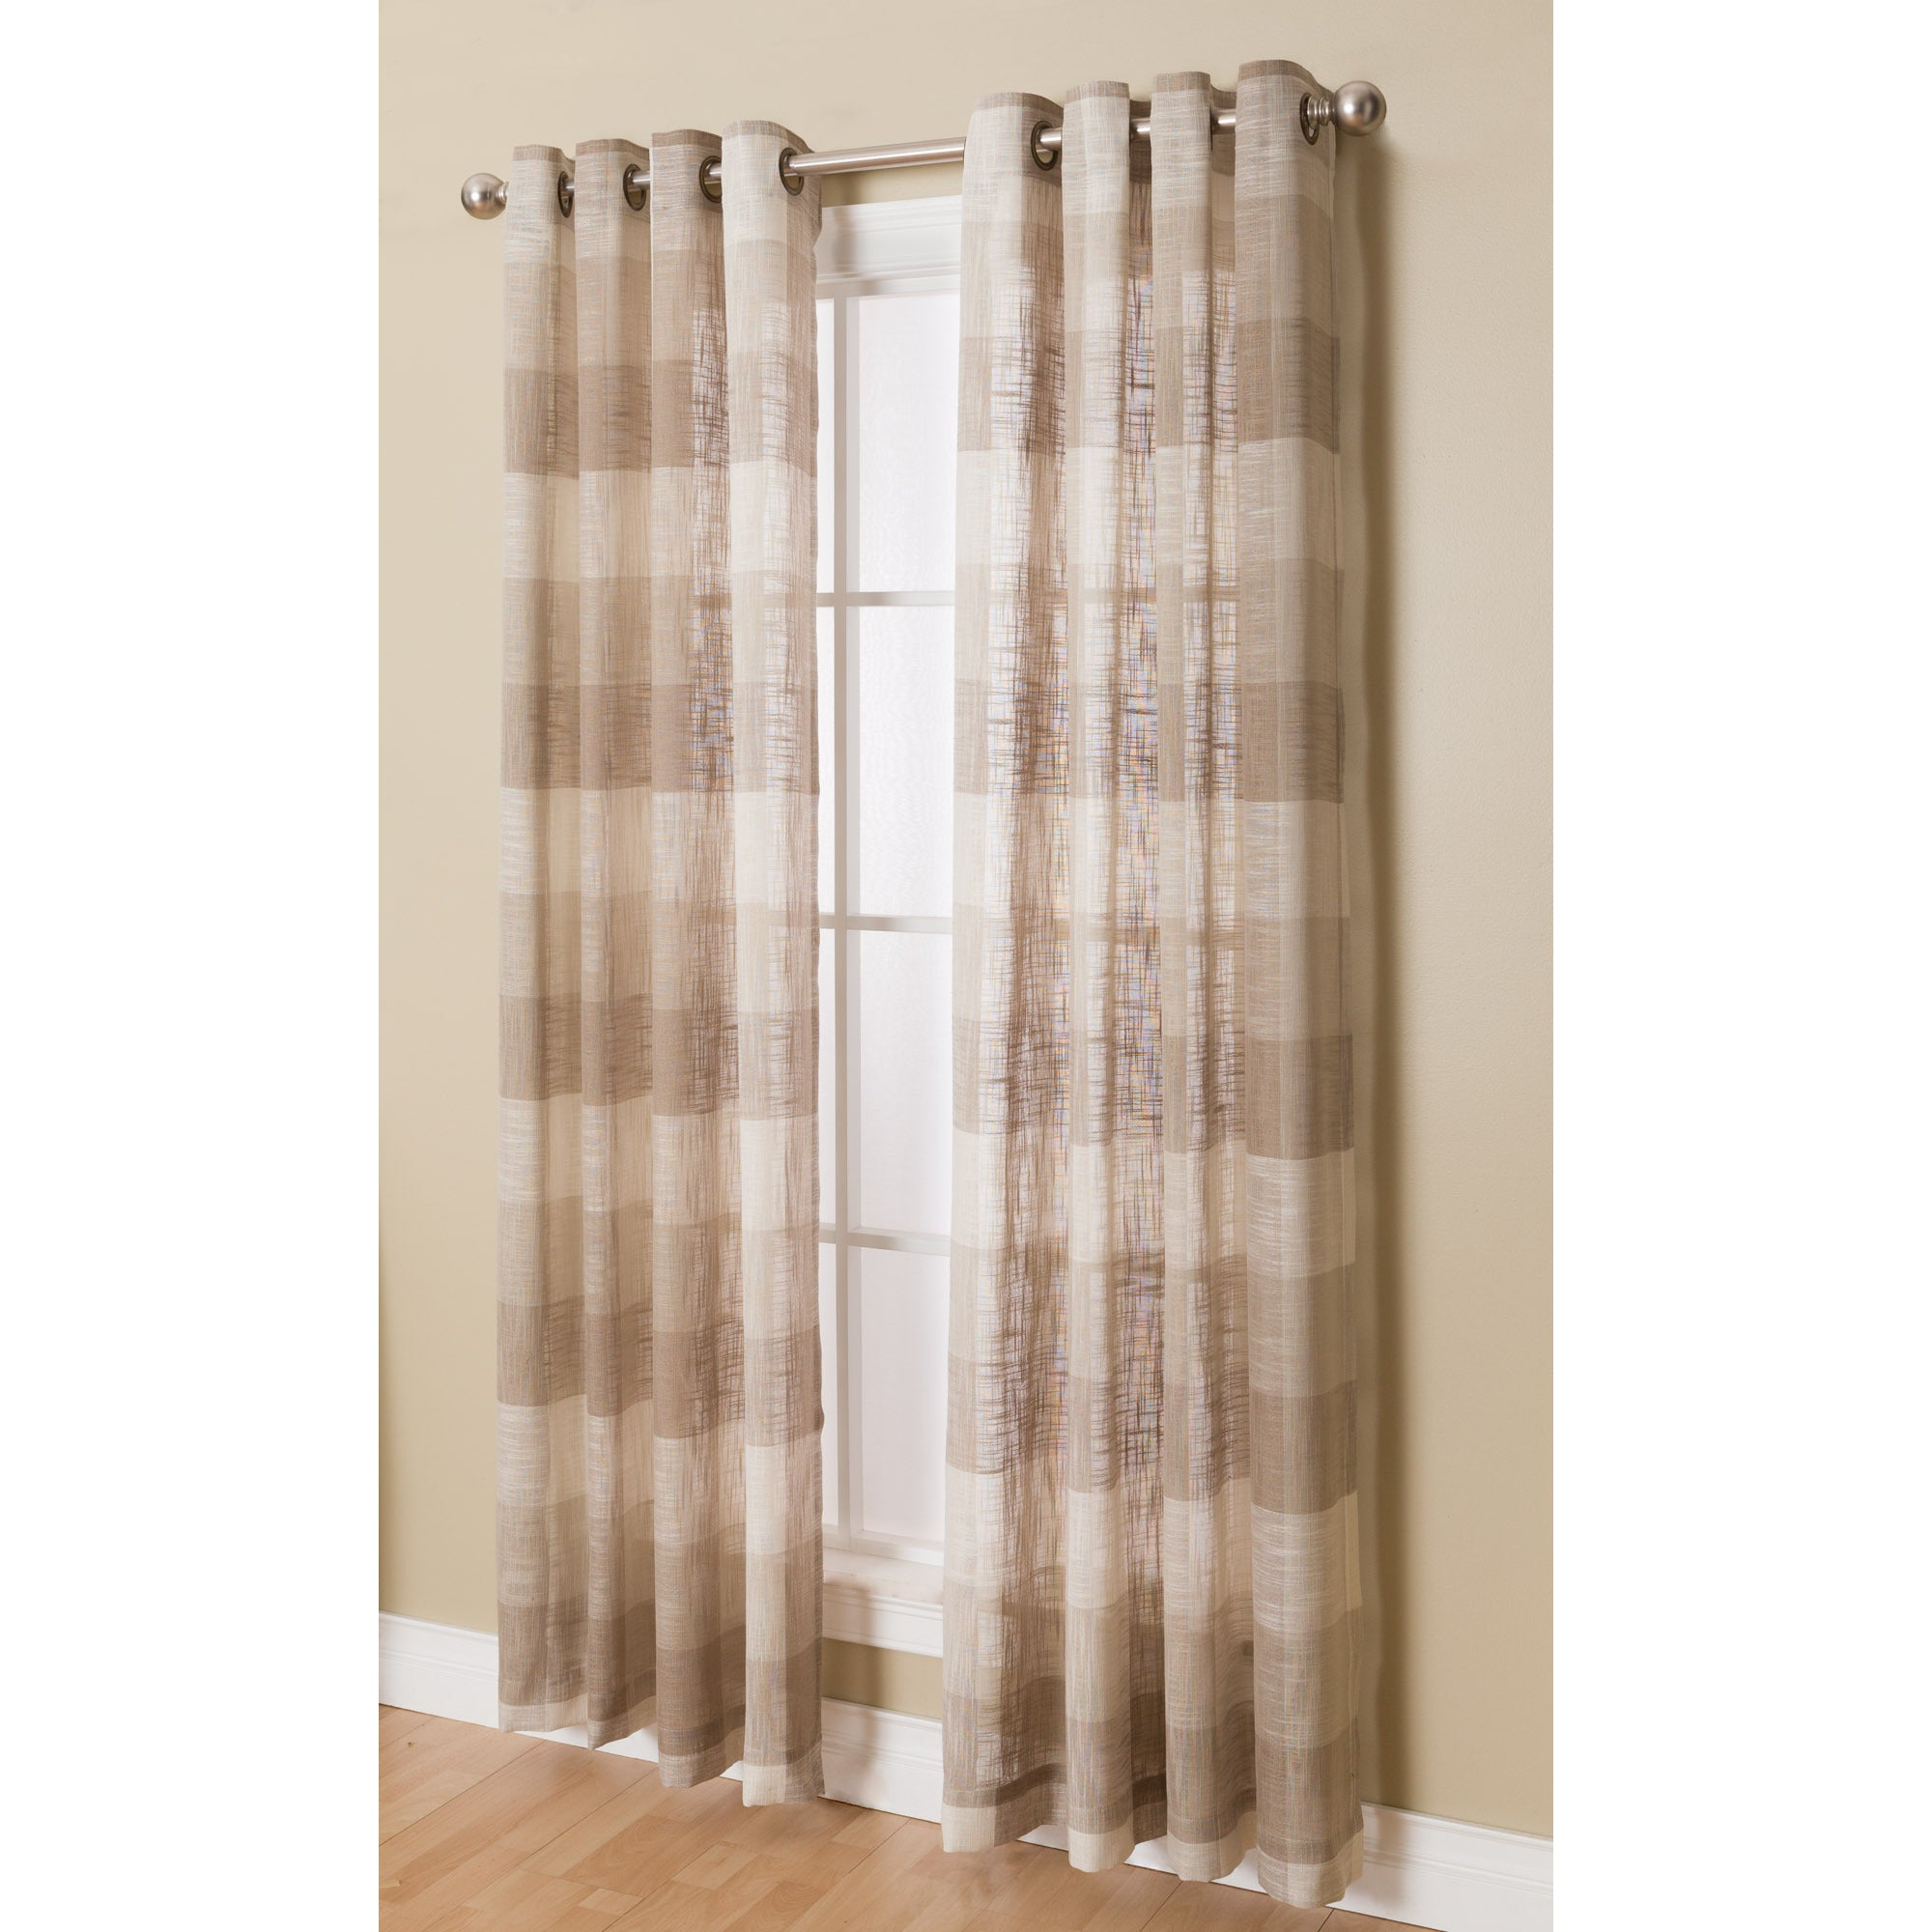 Miller Niles Grommeted Window Curtain Panel (N/A/95 Inche...